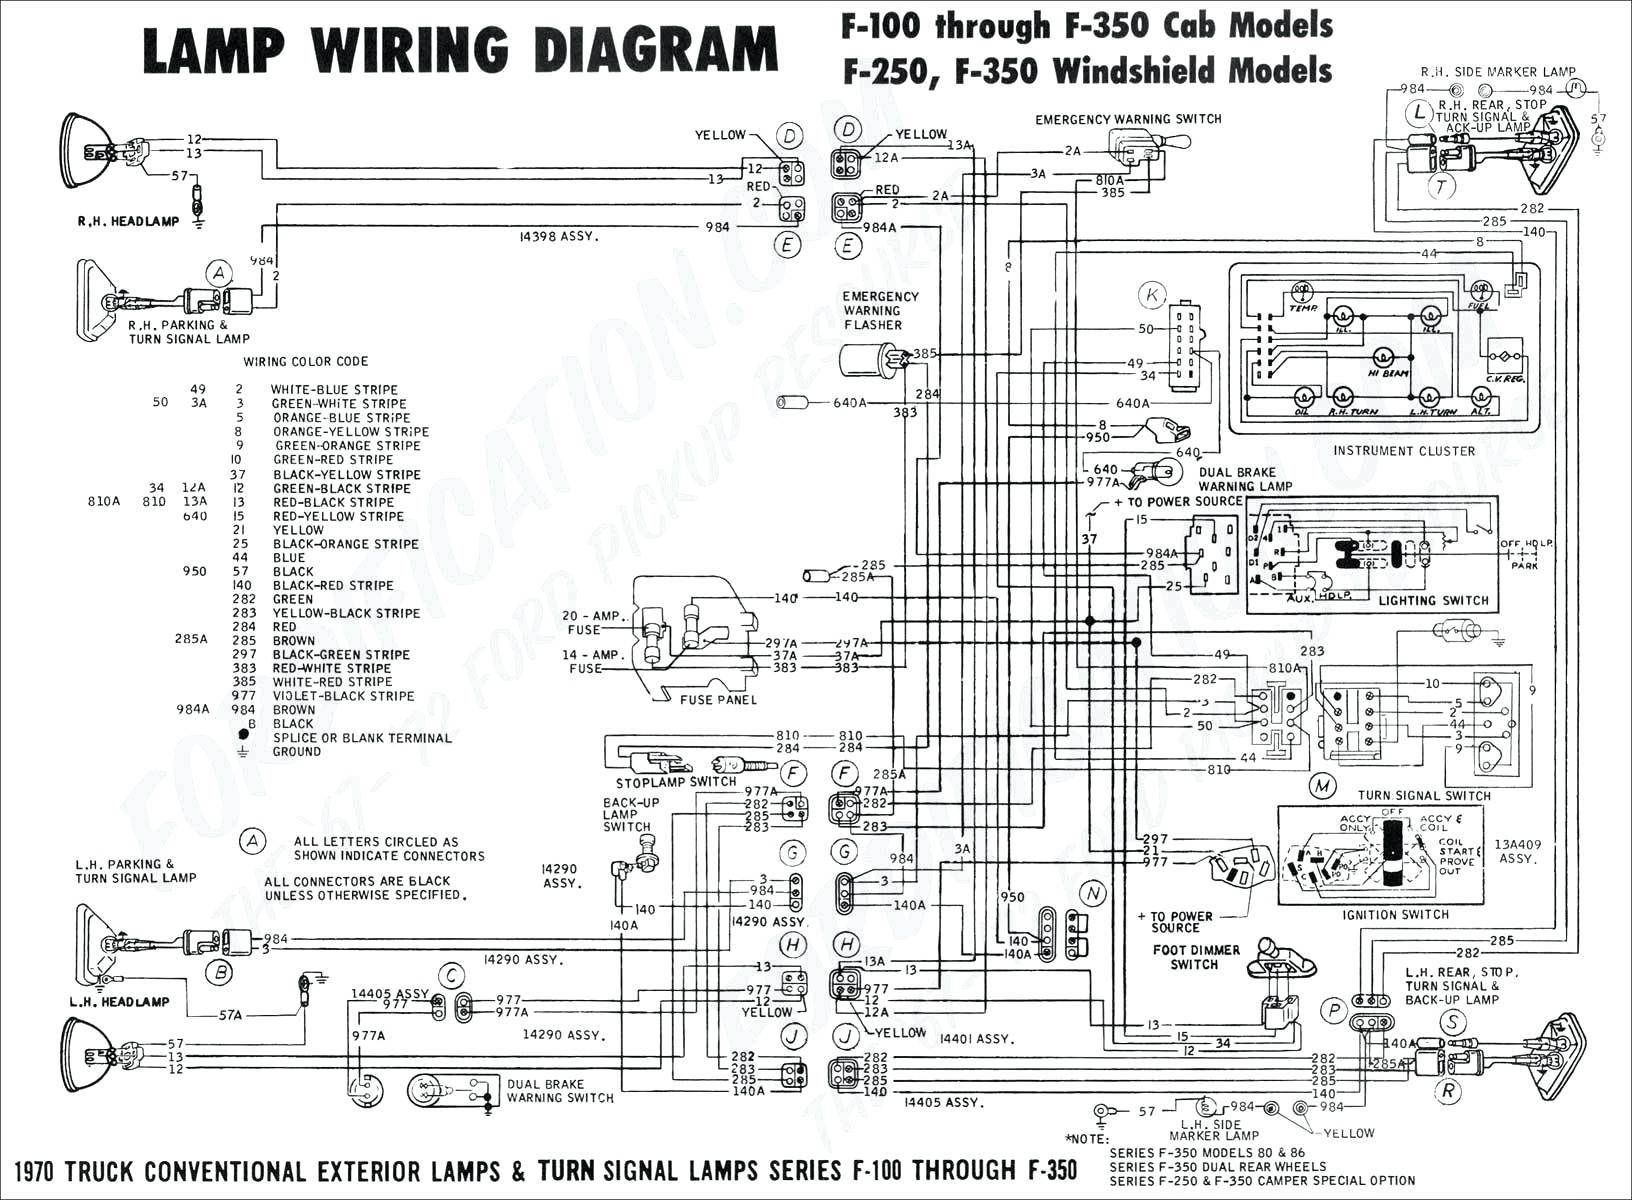 2000 ford mustang wiring diagram Download-2005 ford focus wiring diagram manual original autos weblog wire rh 144 202 83 97 11-g